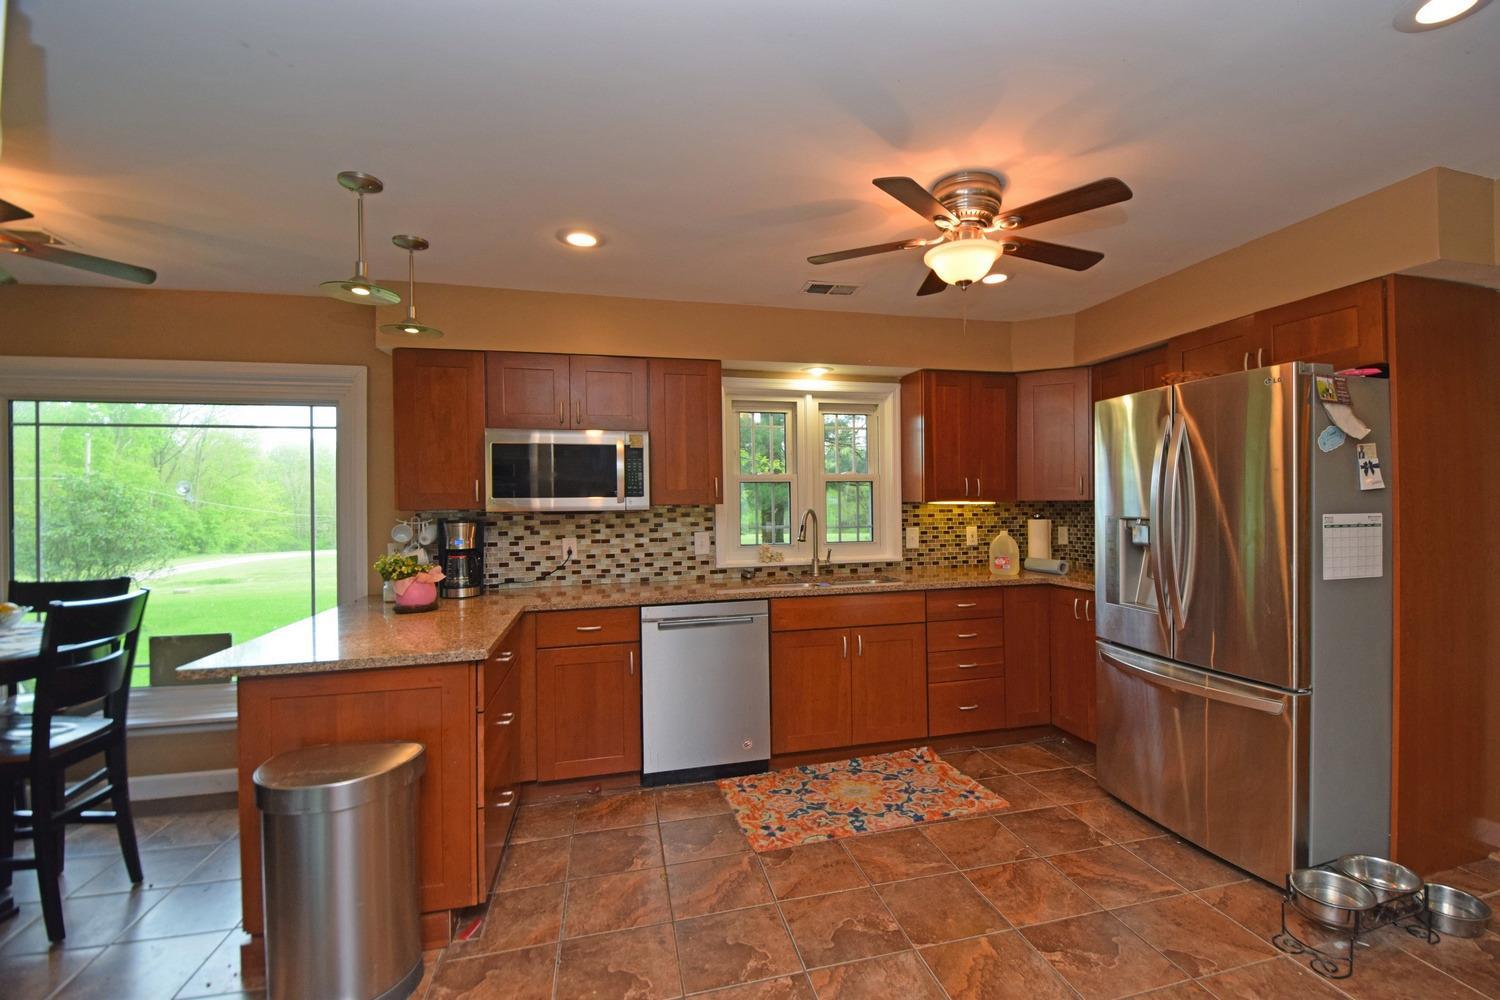 Photo 3 for 1678 Apgar Rd Stonelick Twp., OH 45150